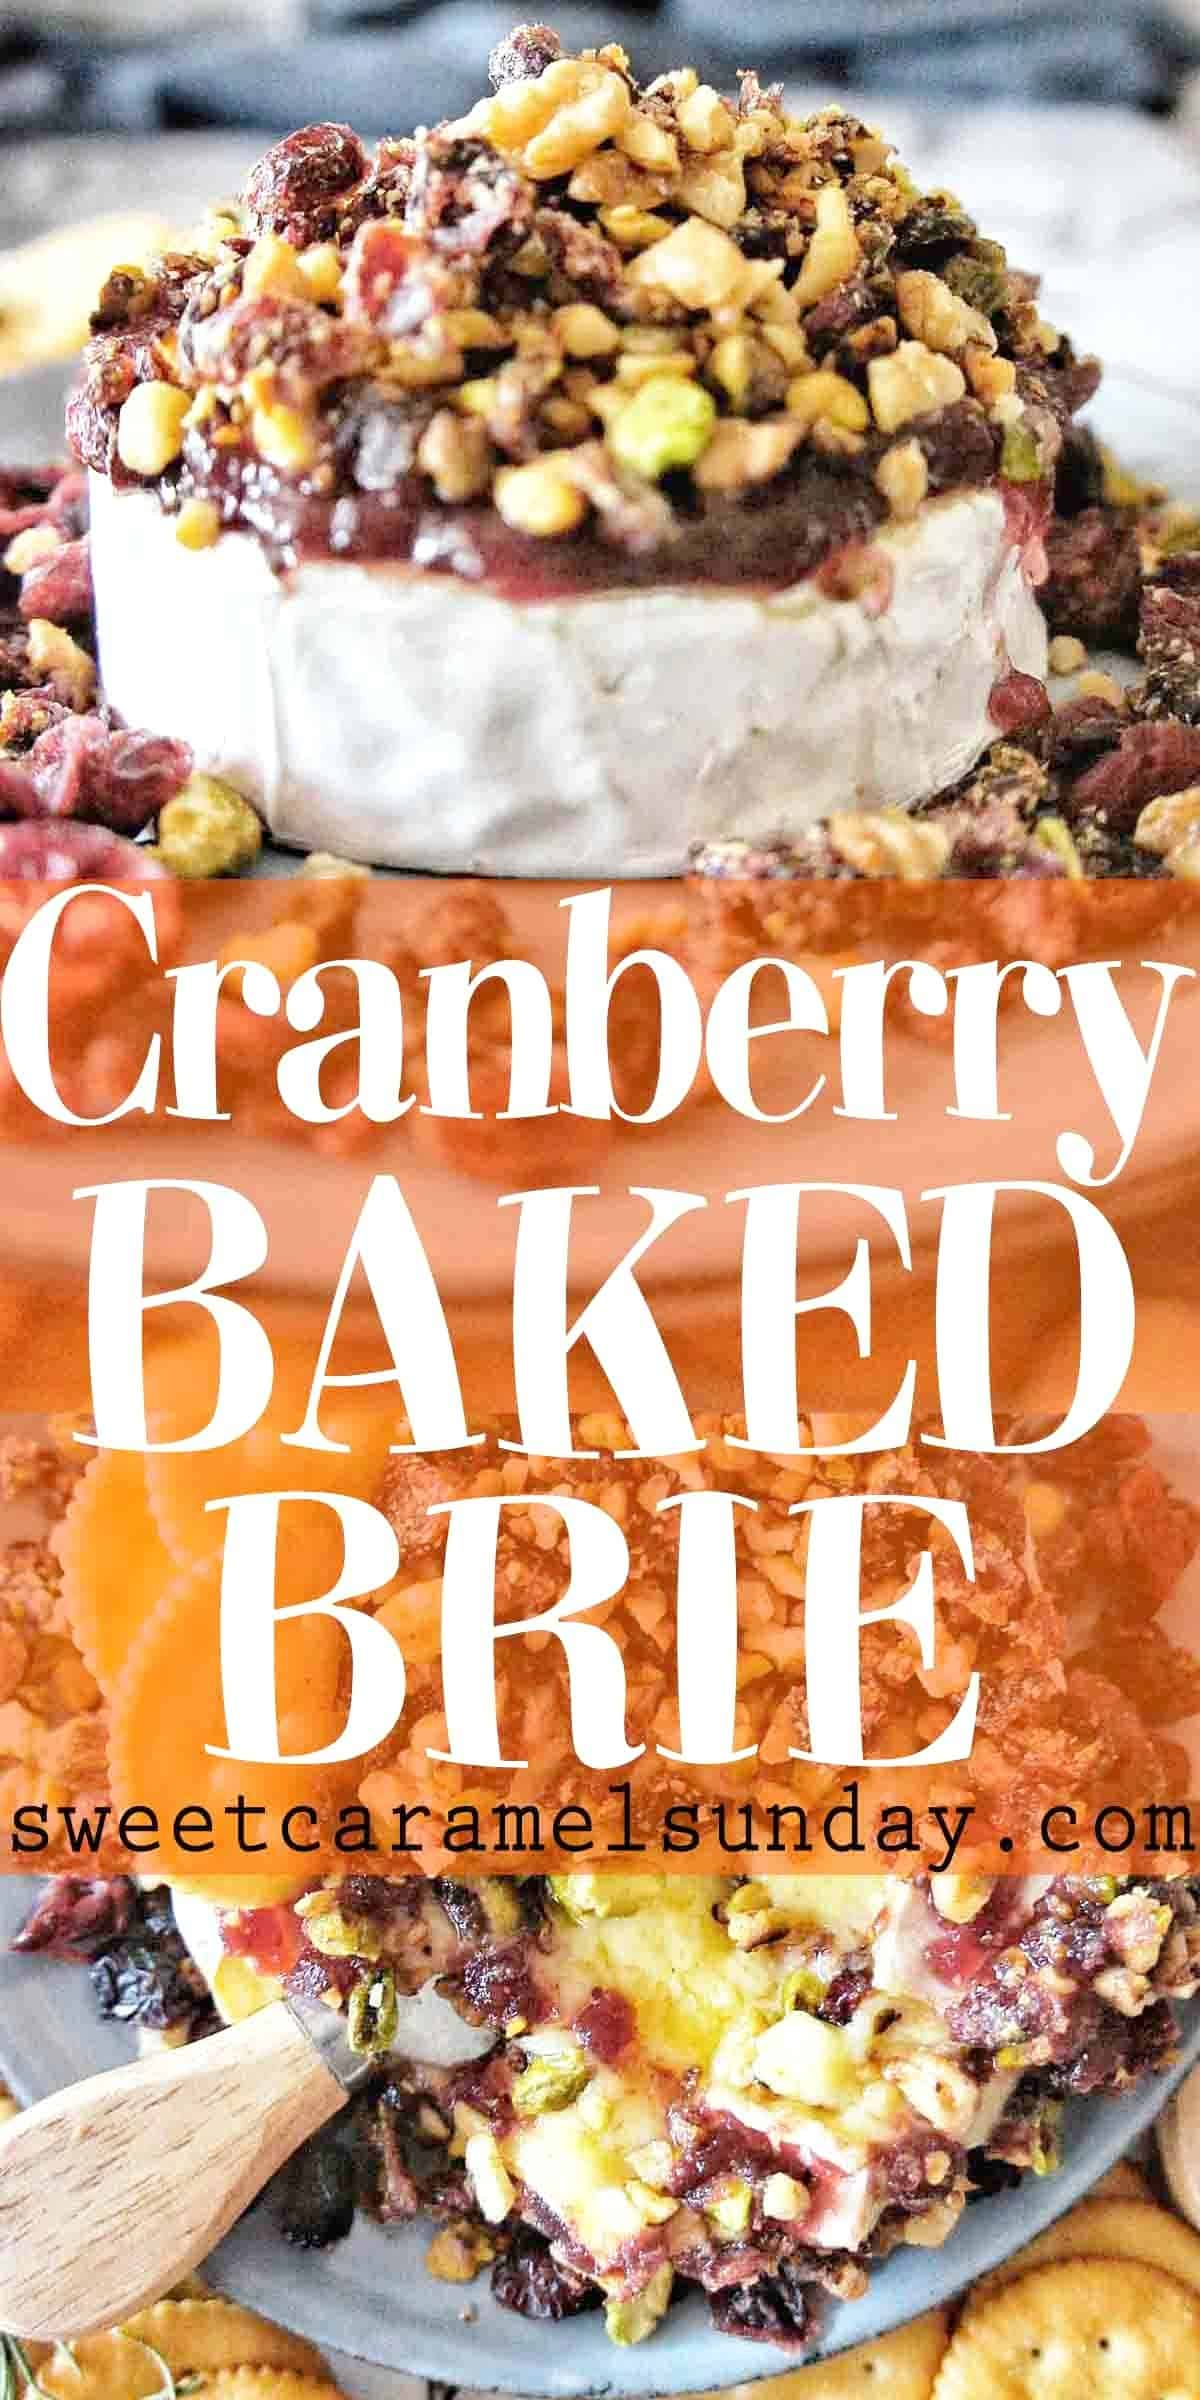 Cranberry Baked Brie on a blue plate with text overlay